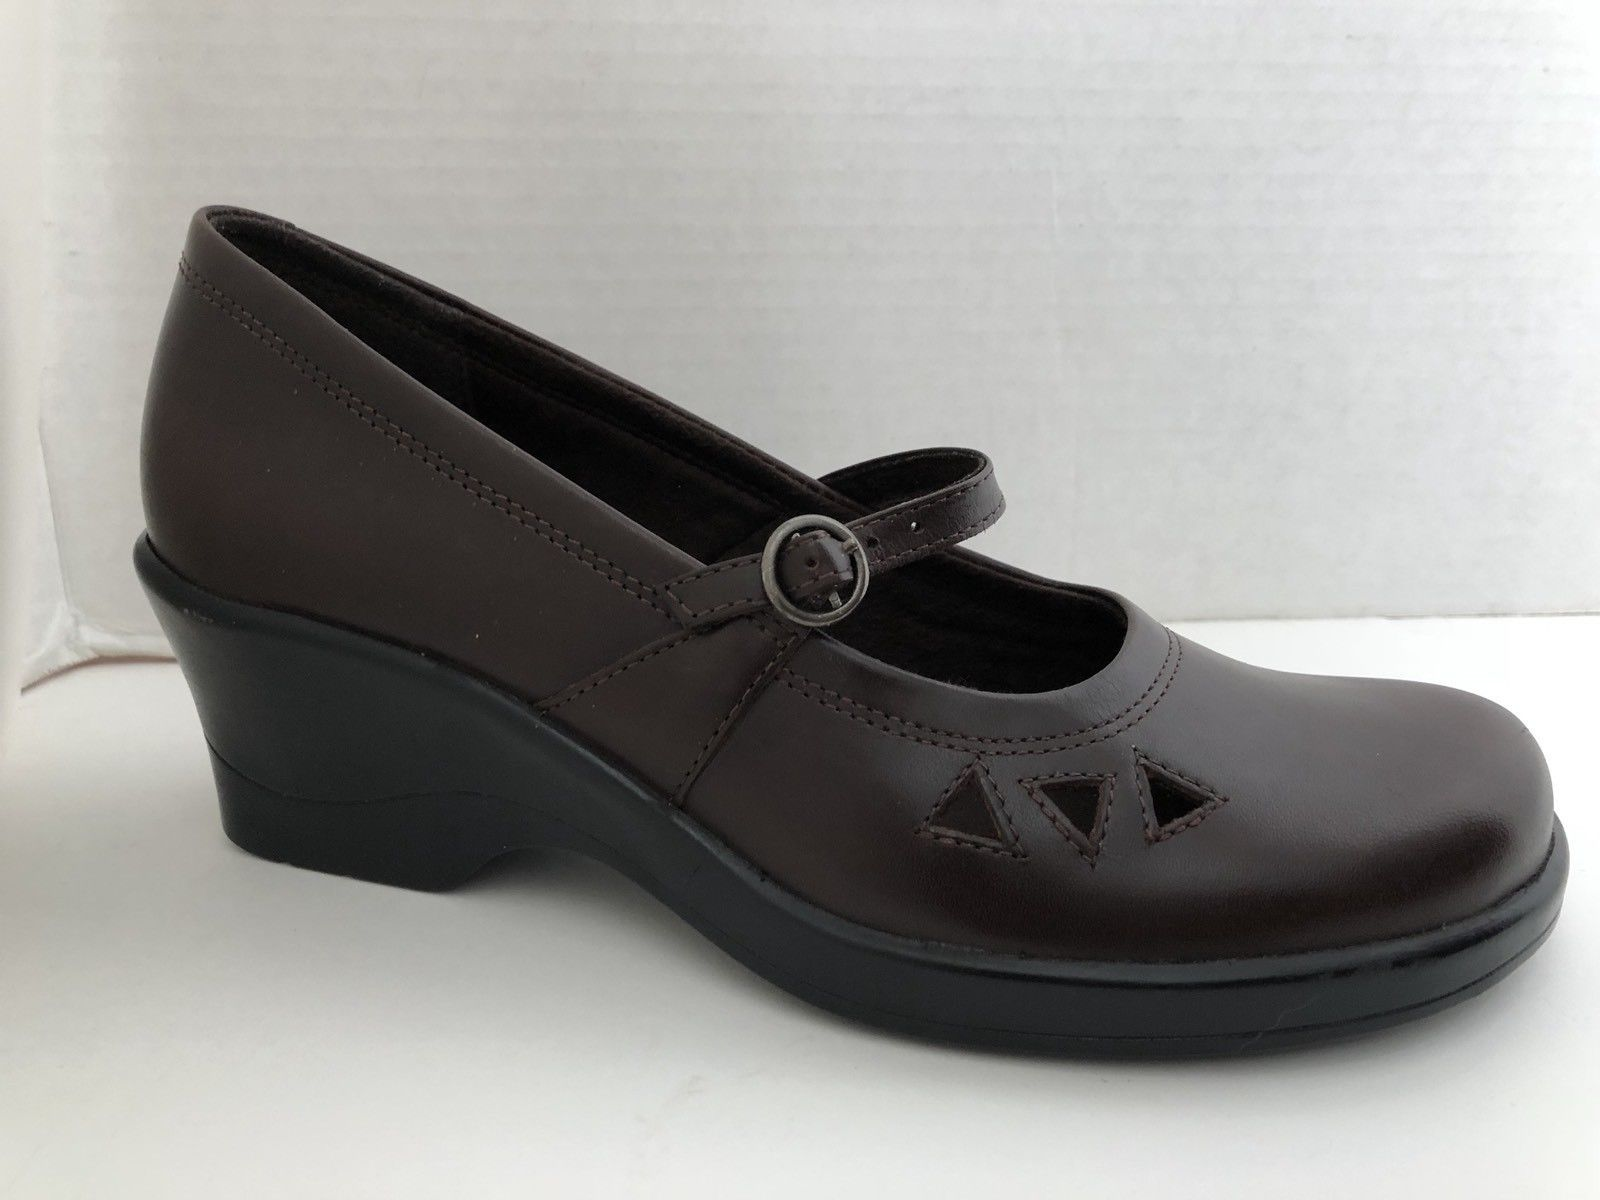 Clarks Shoes Womens Size 6.5 M Brown Mary Jane Loafers 6 1/2 M 70185 Brazil